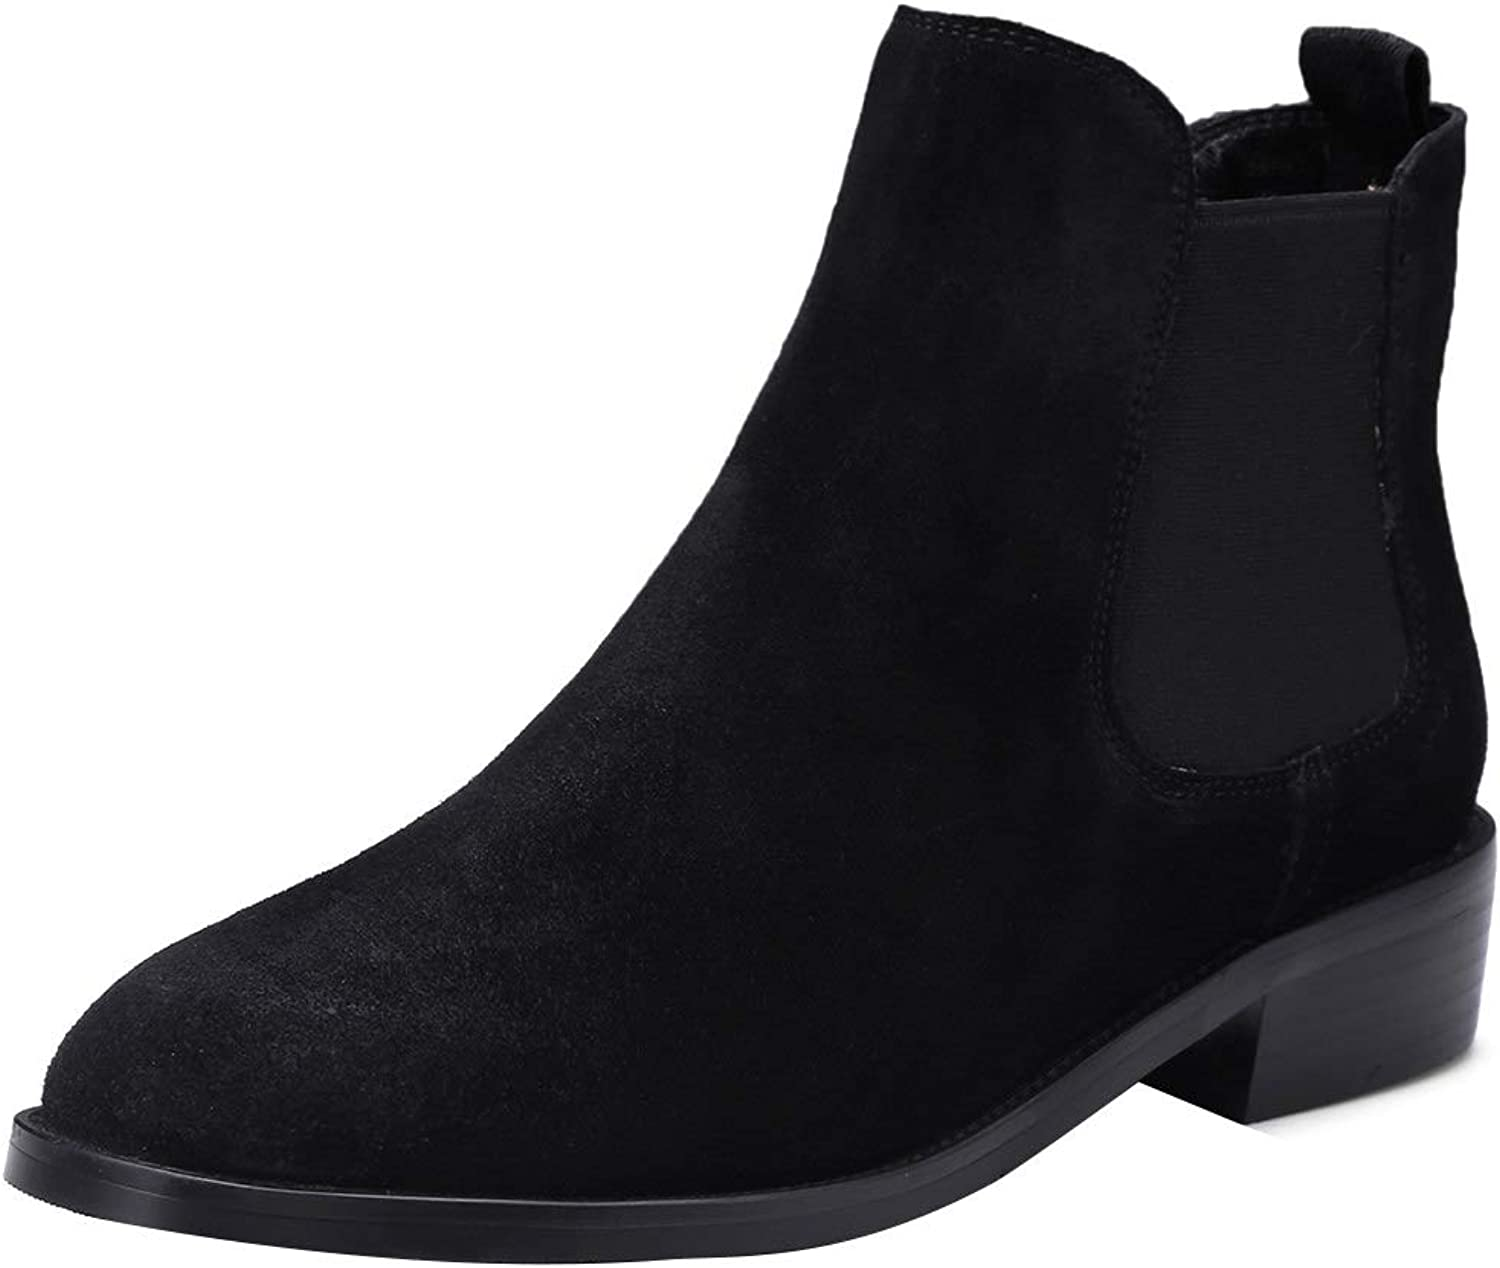 MAYPIE Womens Toacade Leather Slip-on Ankle Boots